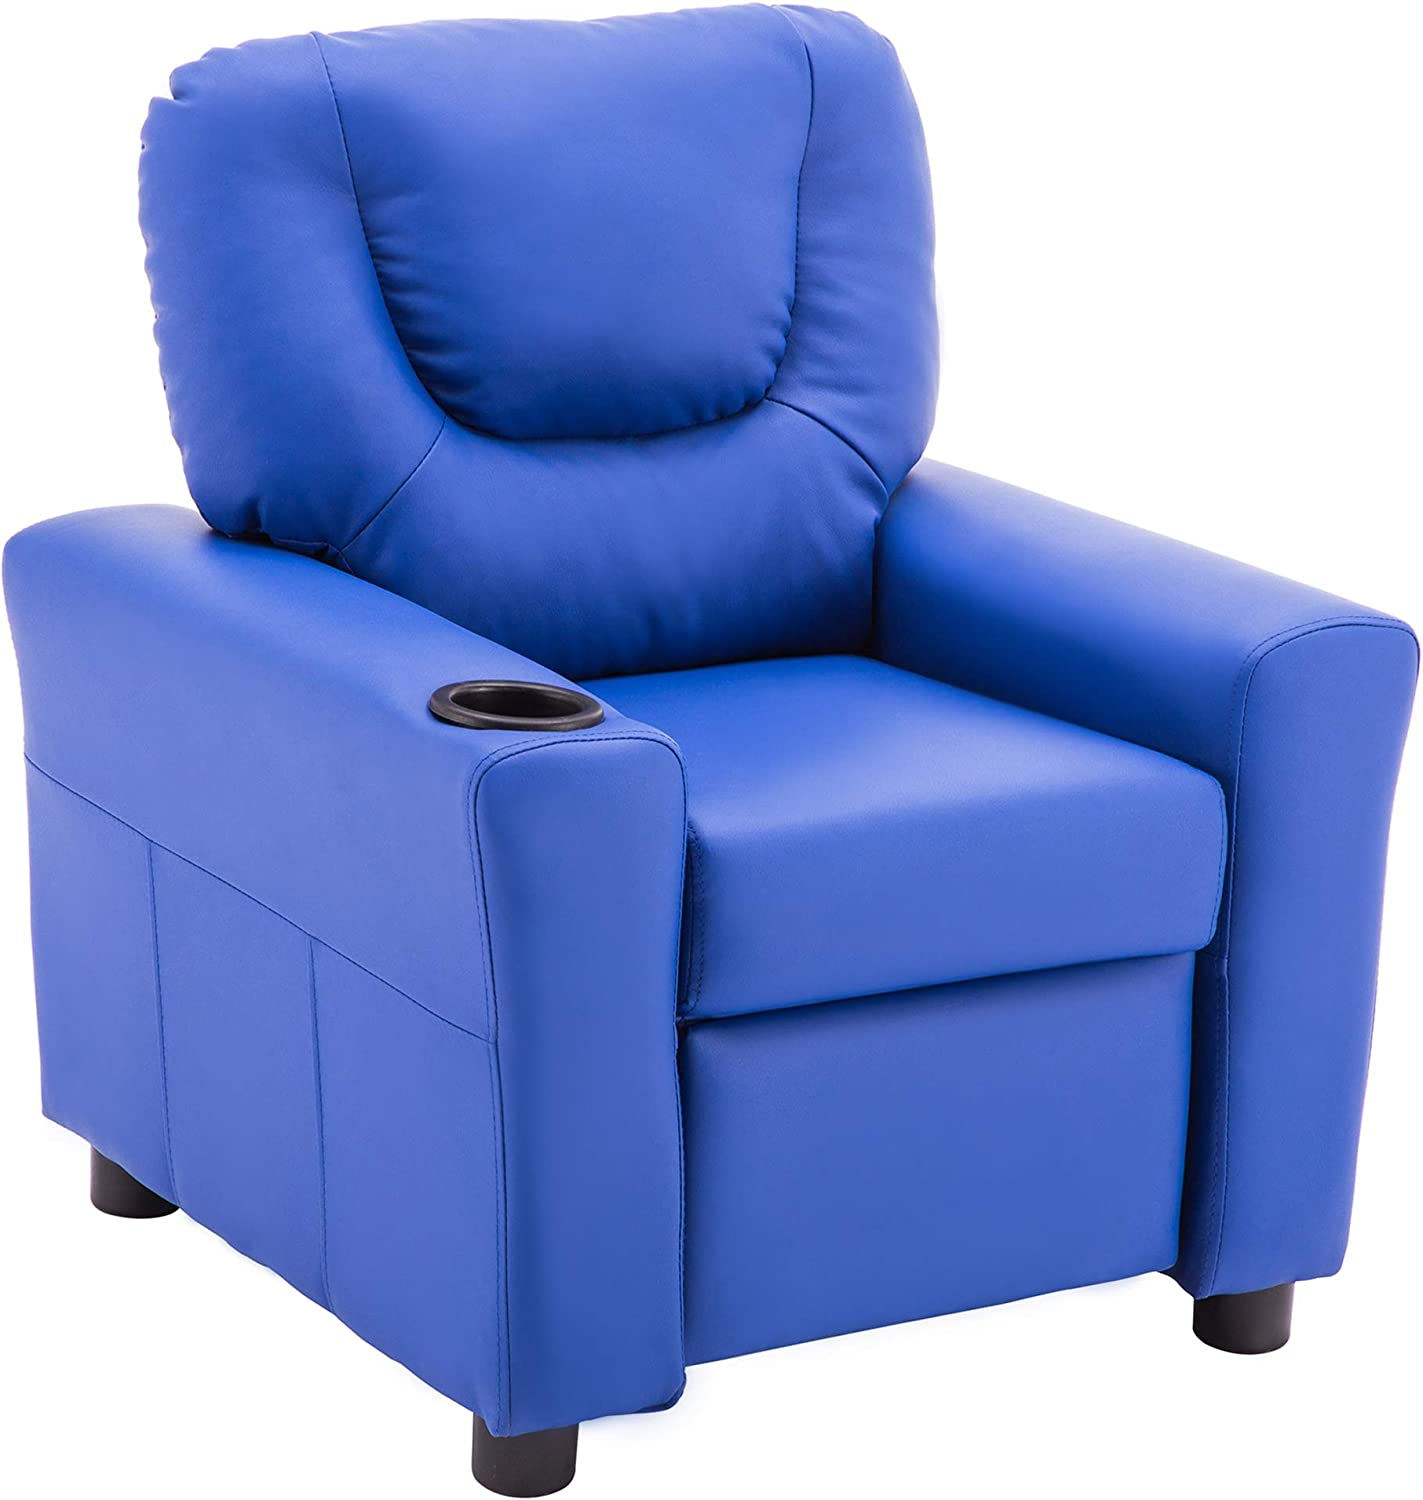 Mcombo Kids Recliner Superlatite Chair Armrest Sofa with Couch OFFicial site Cup fo Holder